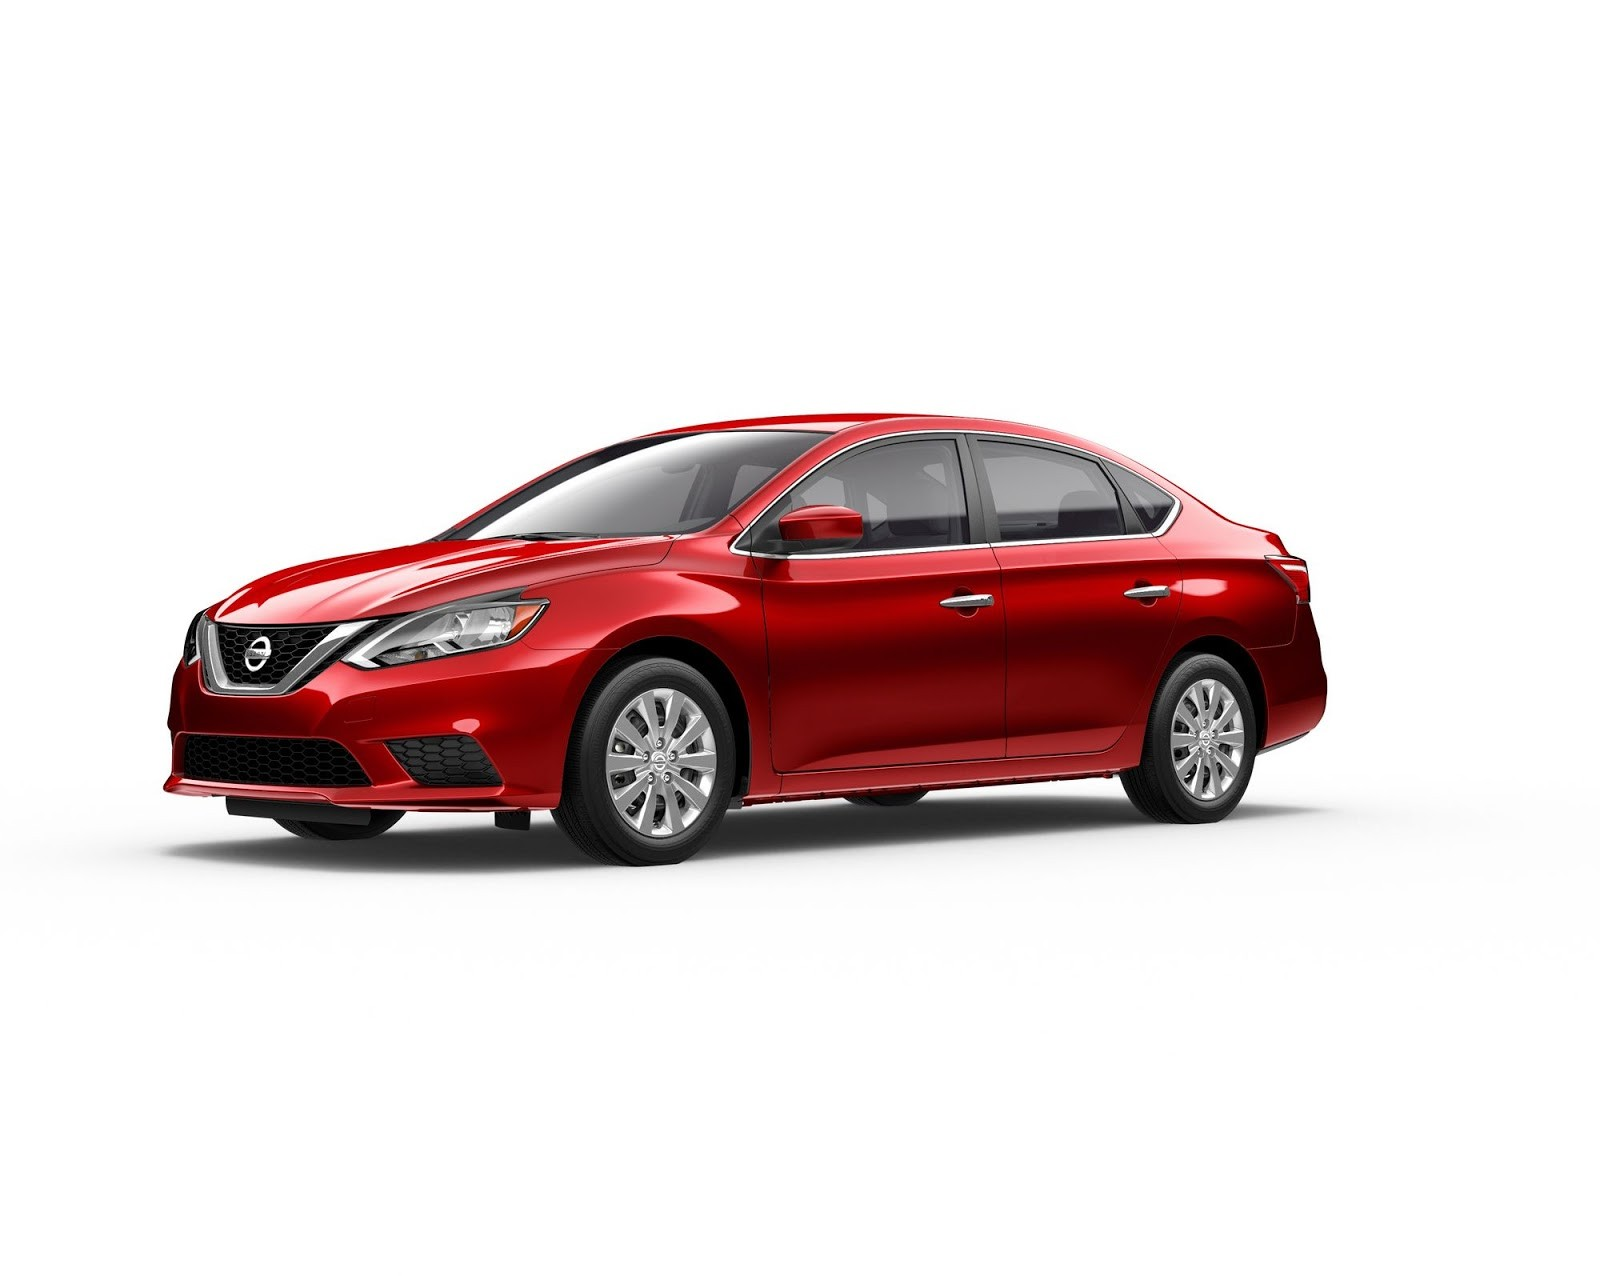 Nissan Sentra Sv >> Automatic Emergency Braking Is Now Standard For Updated 2018 Nissan Sentra - autoevolution